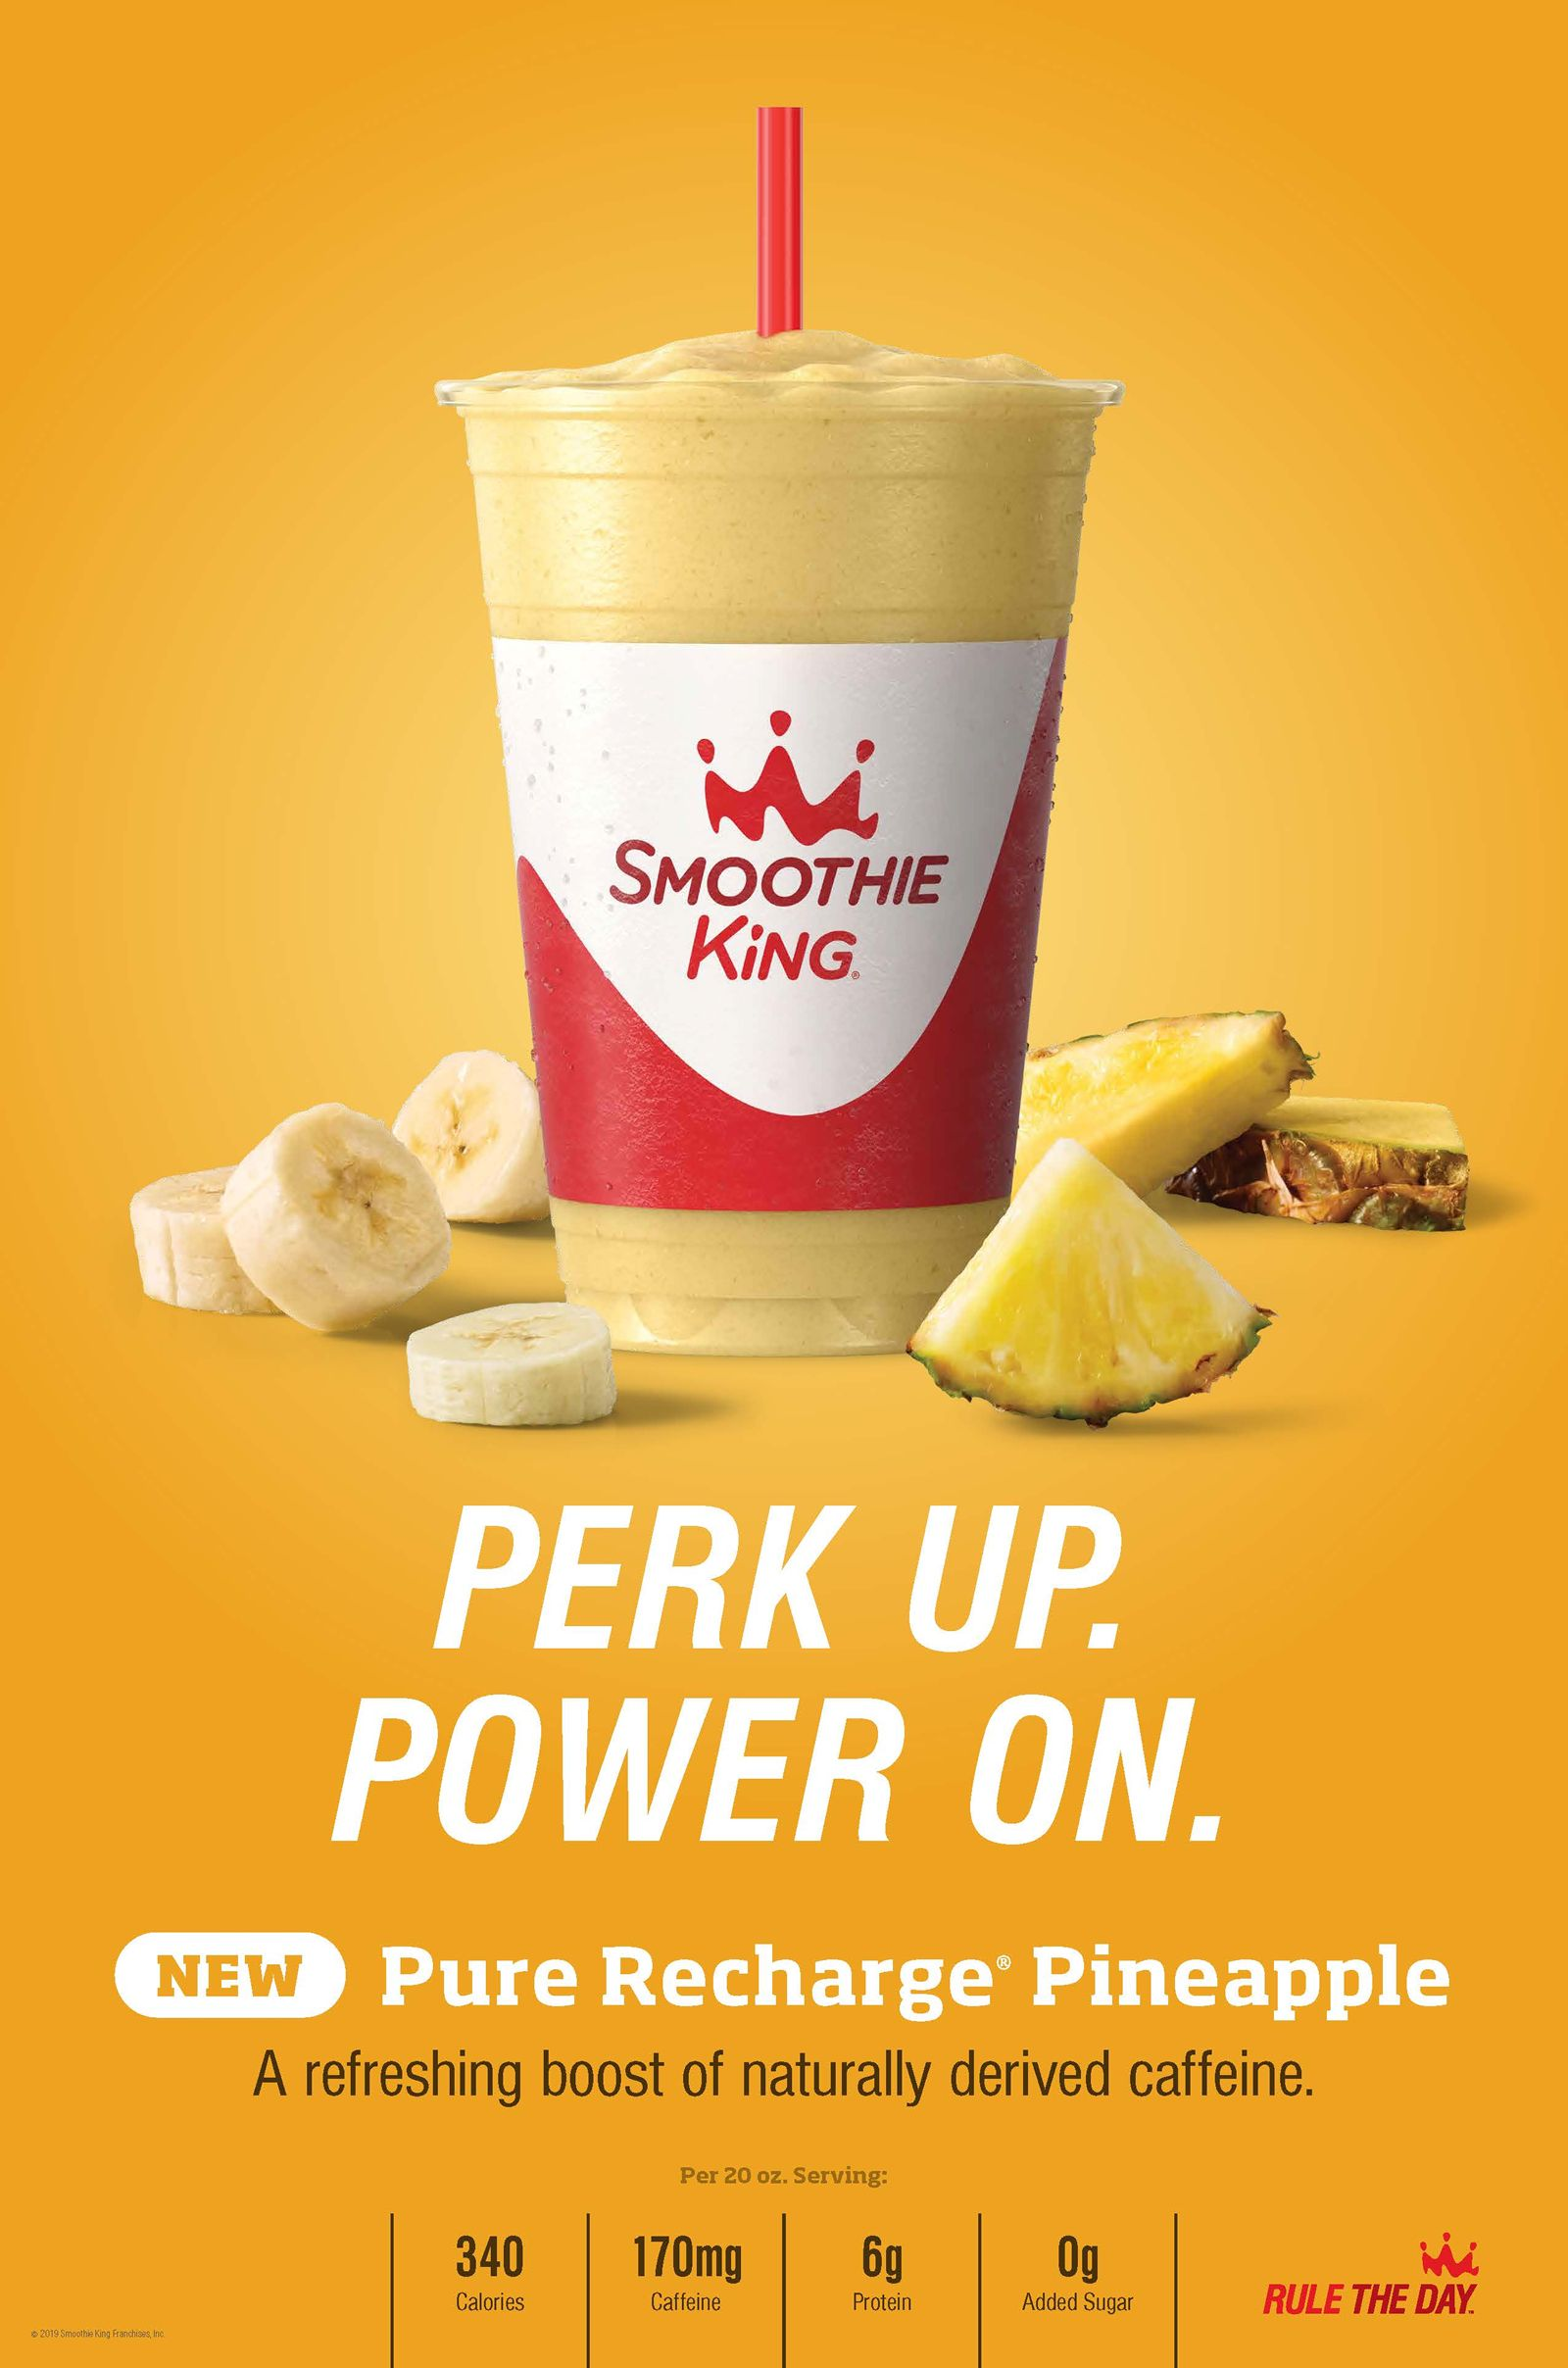 Rule the Day with Smoothie King's New Pure Recharge Pineapple Smoothie